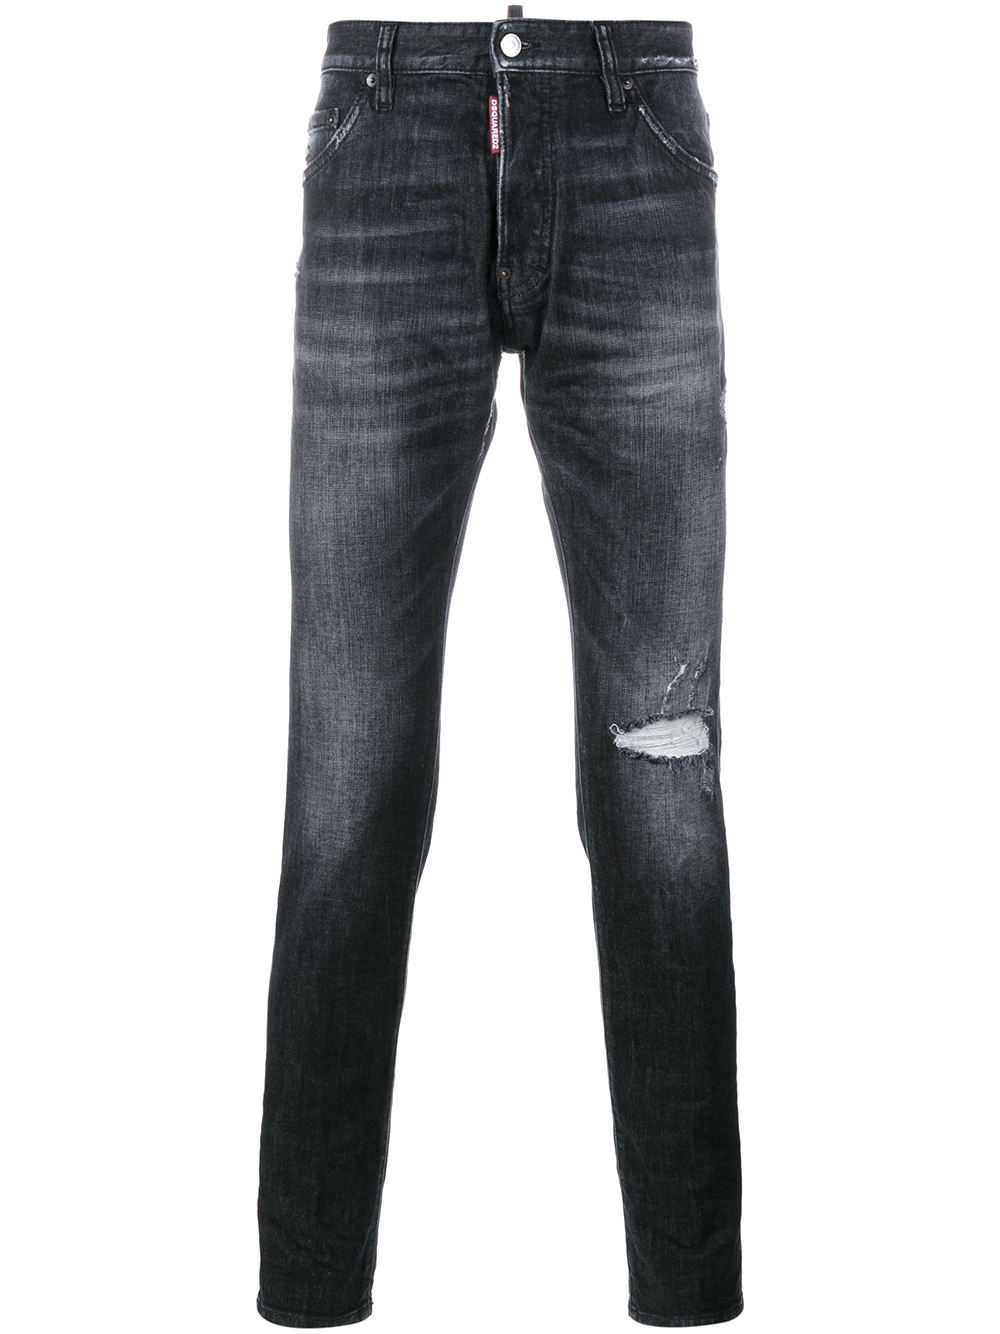 Dsquared² Cool Guy Distressed Jeans in Black for Men | Lyst